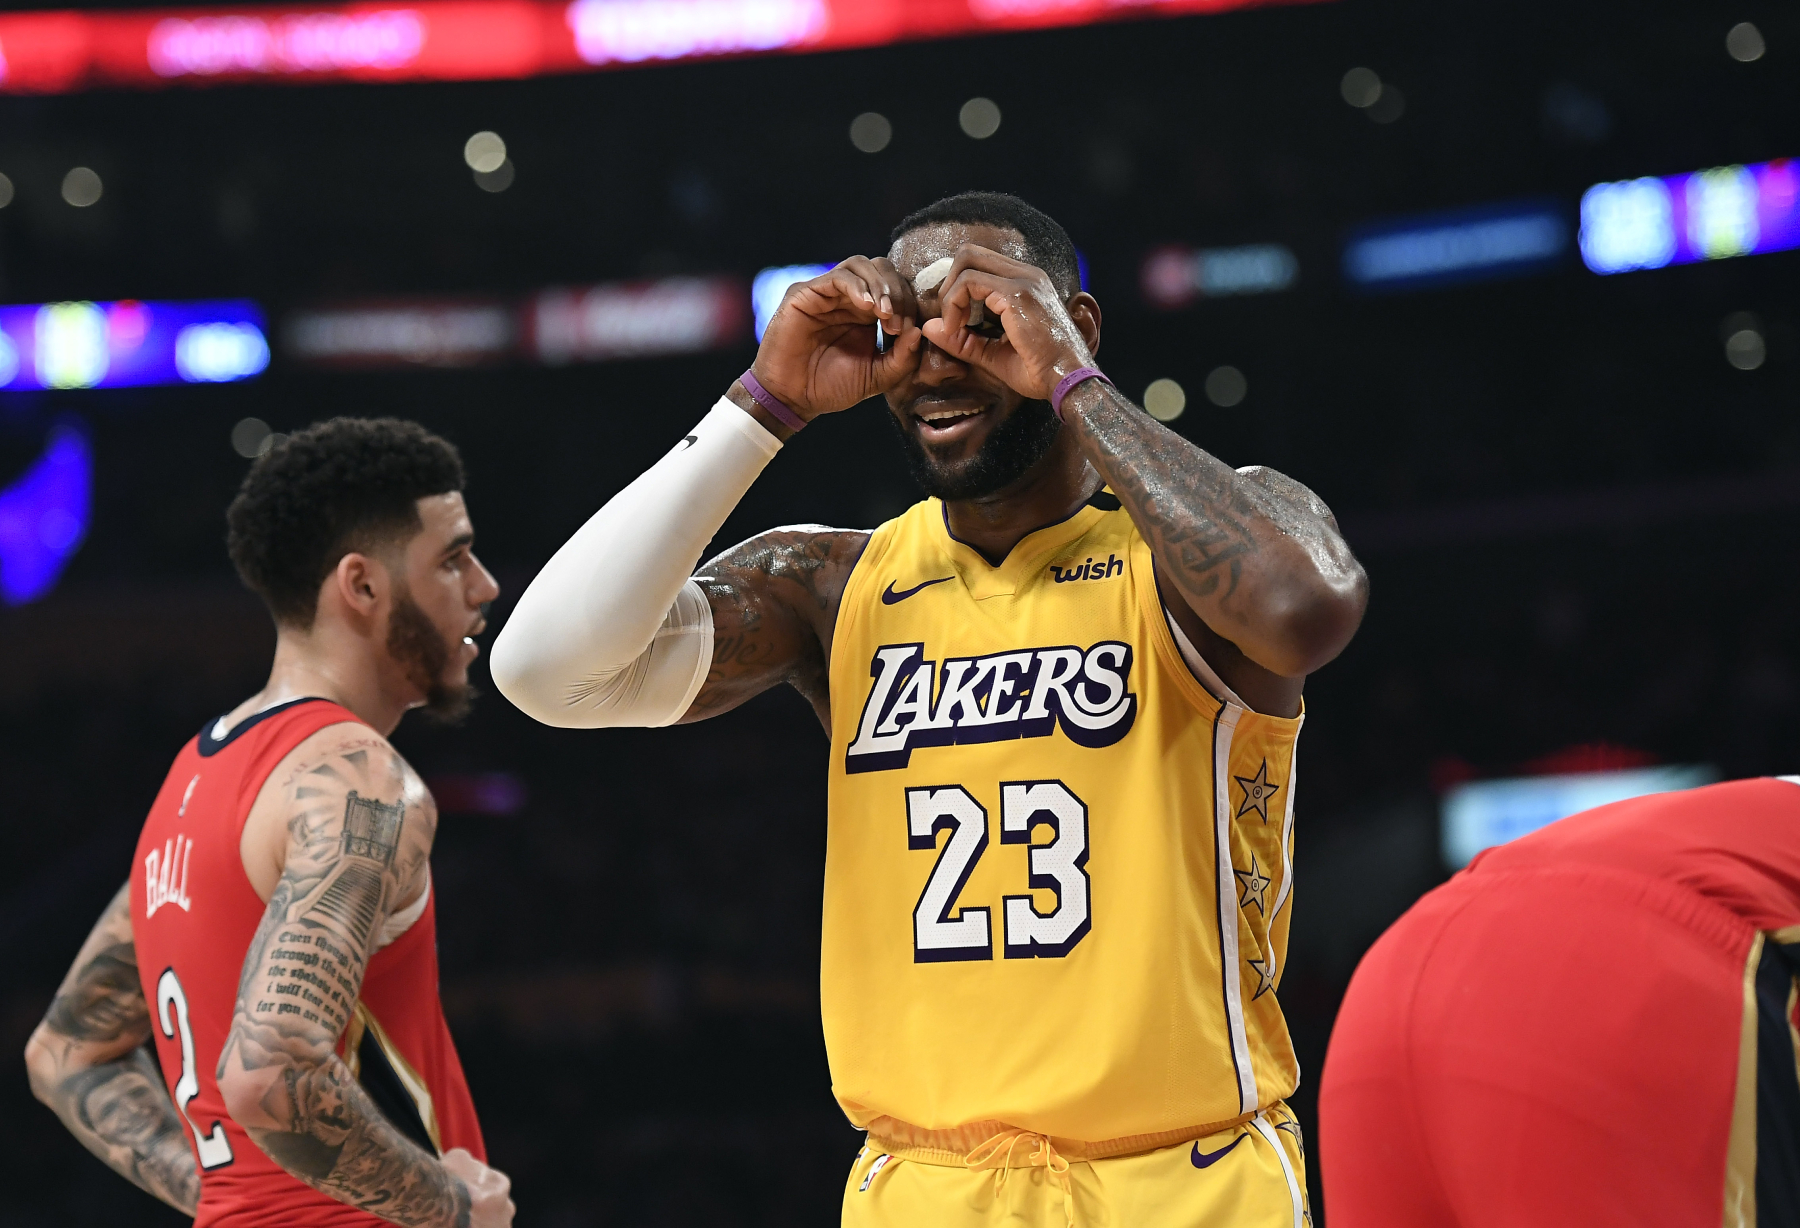 LeBron James has as many haters as he does fans. The Lakers star just recently called out his critics for being wrong about him.